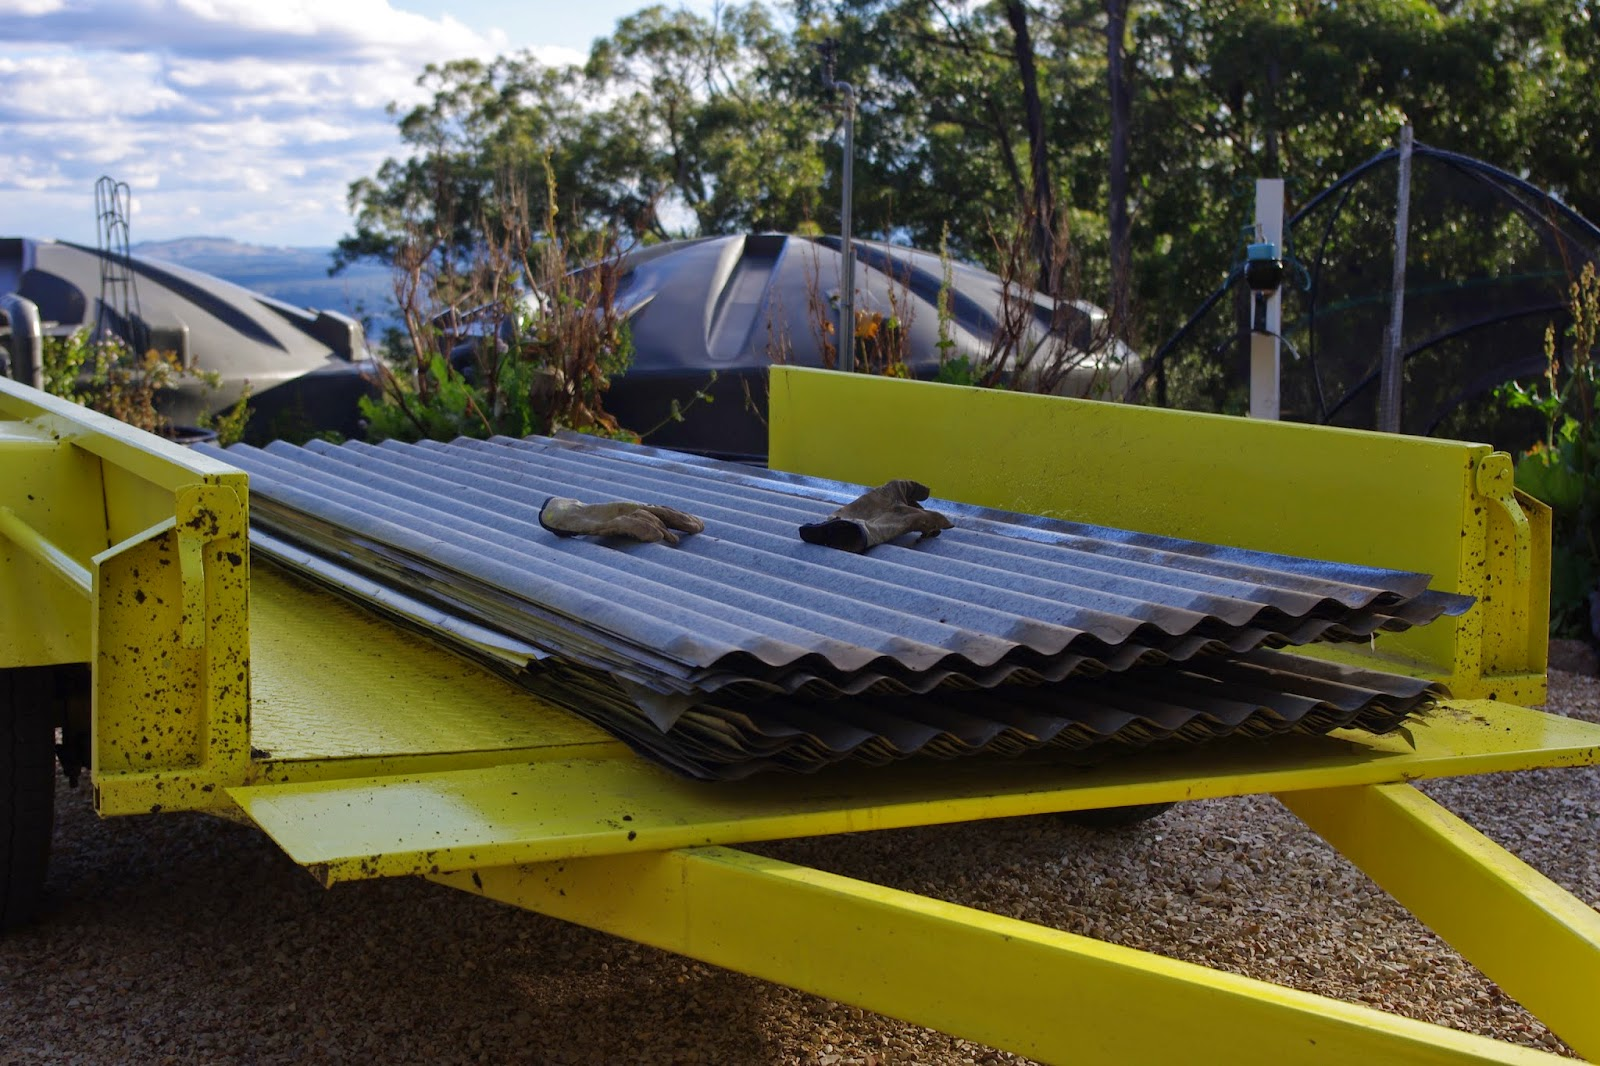 Iron sheeting on the yellow peril trailer